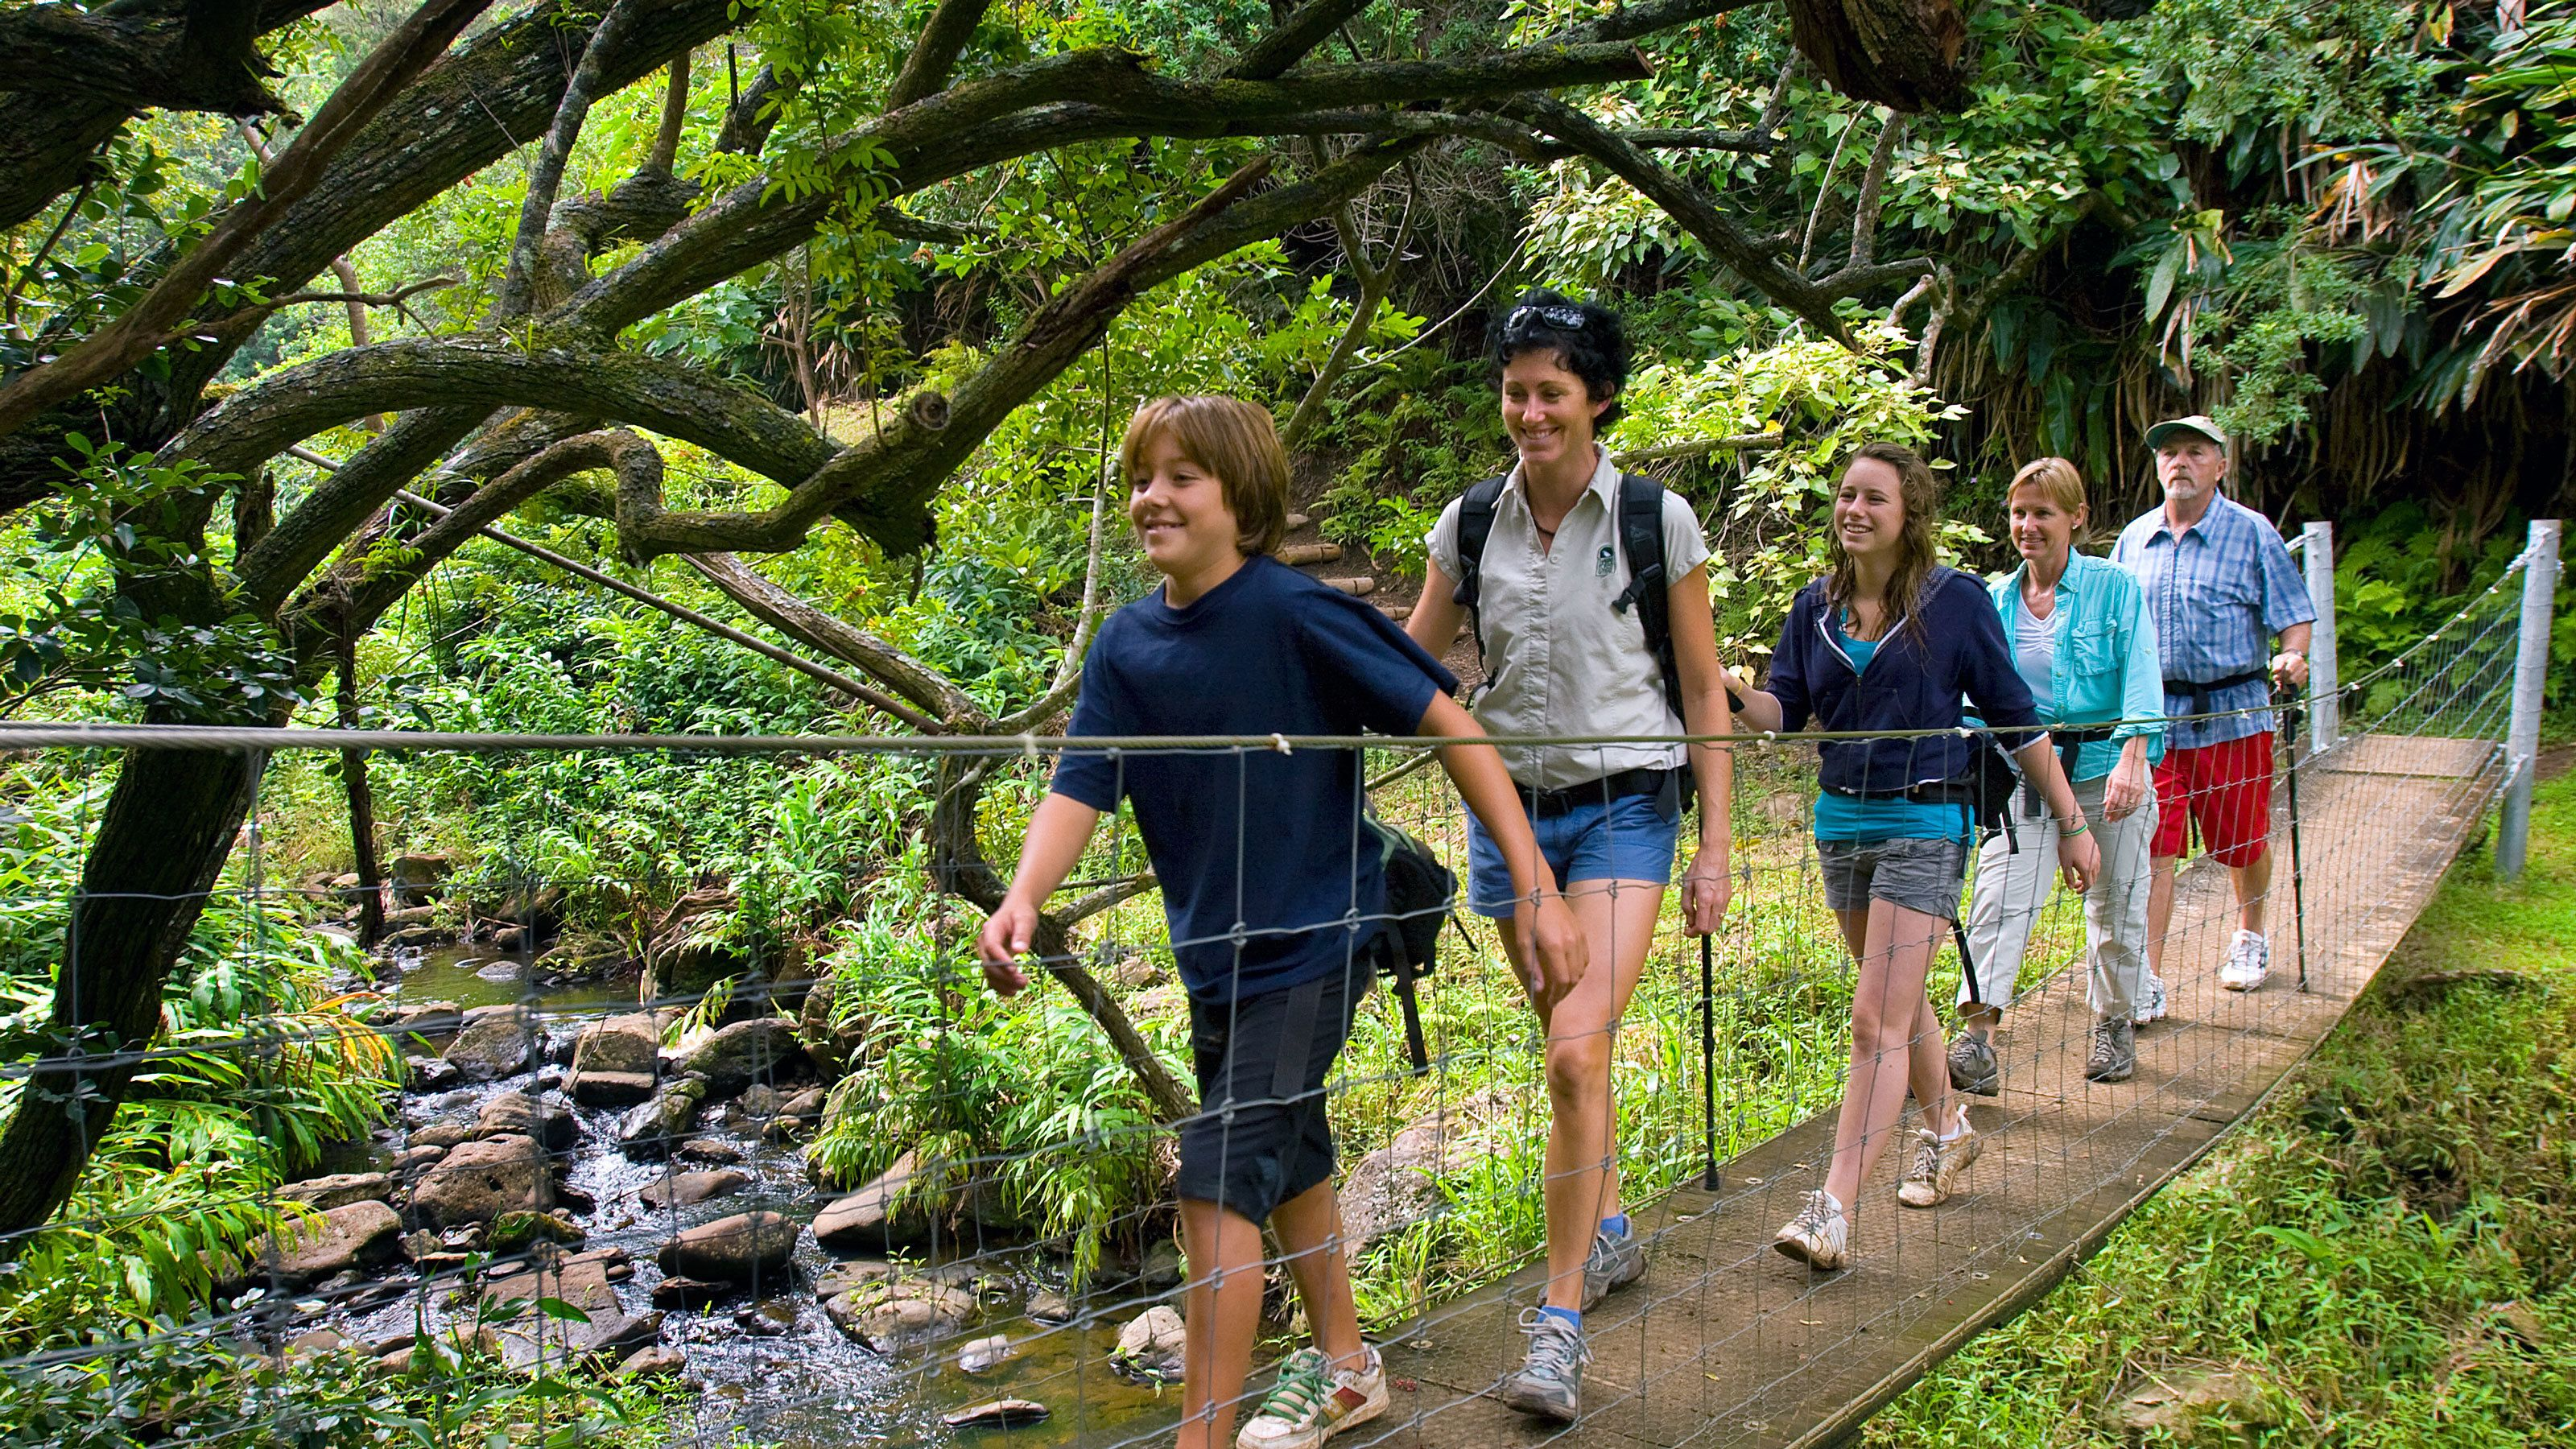 Group crossing over stream on a wooden bridge in Hawaii